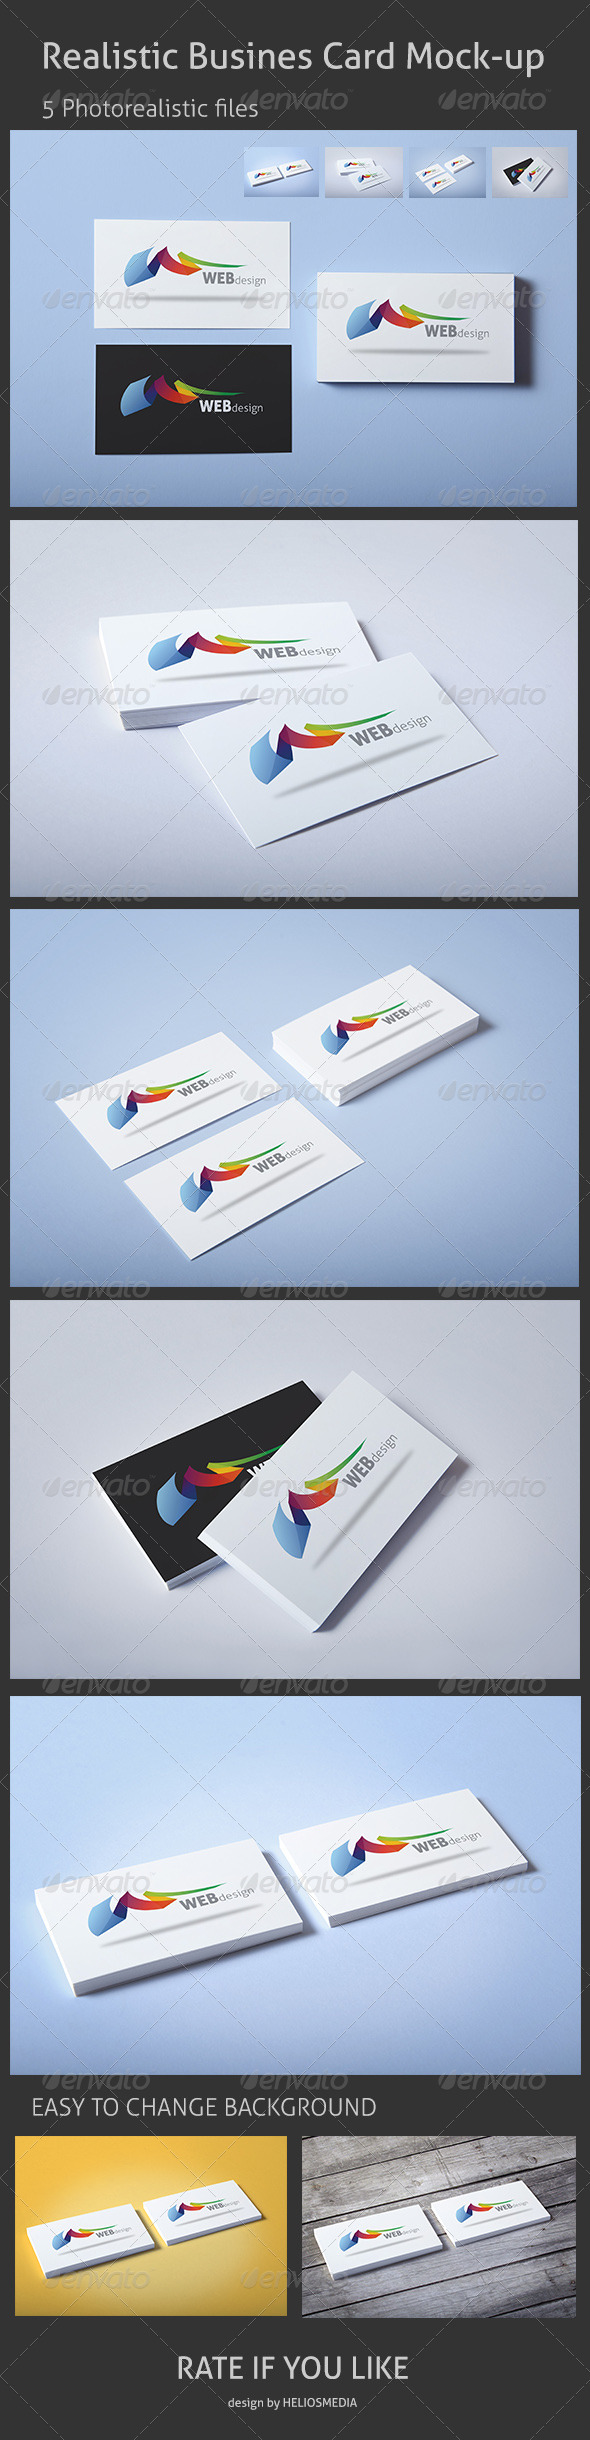 GraphicRiver Realistic Business Card Mock-up 3441462